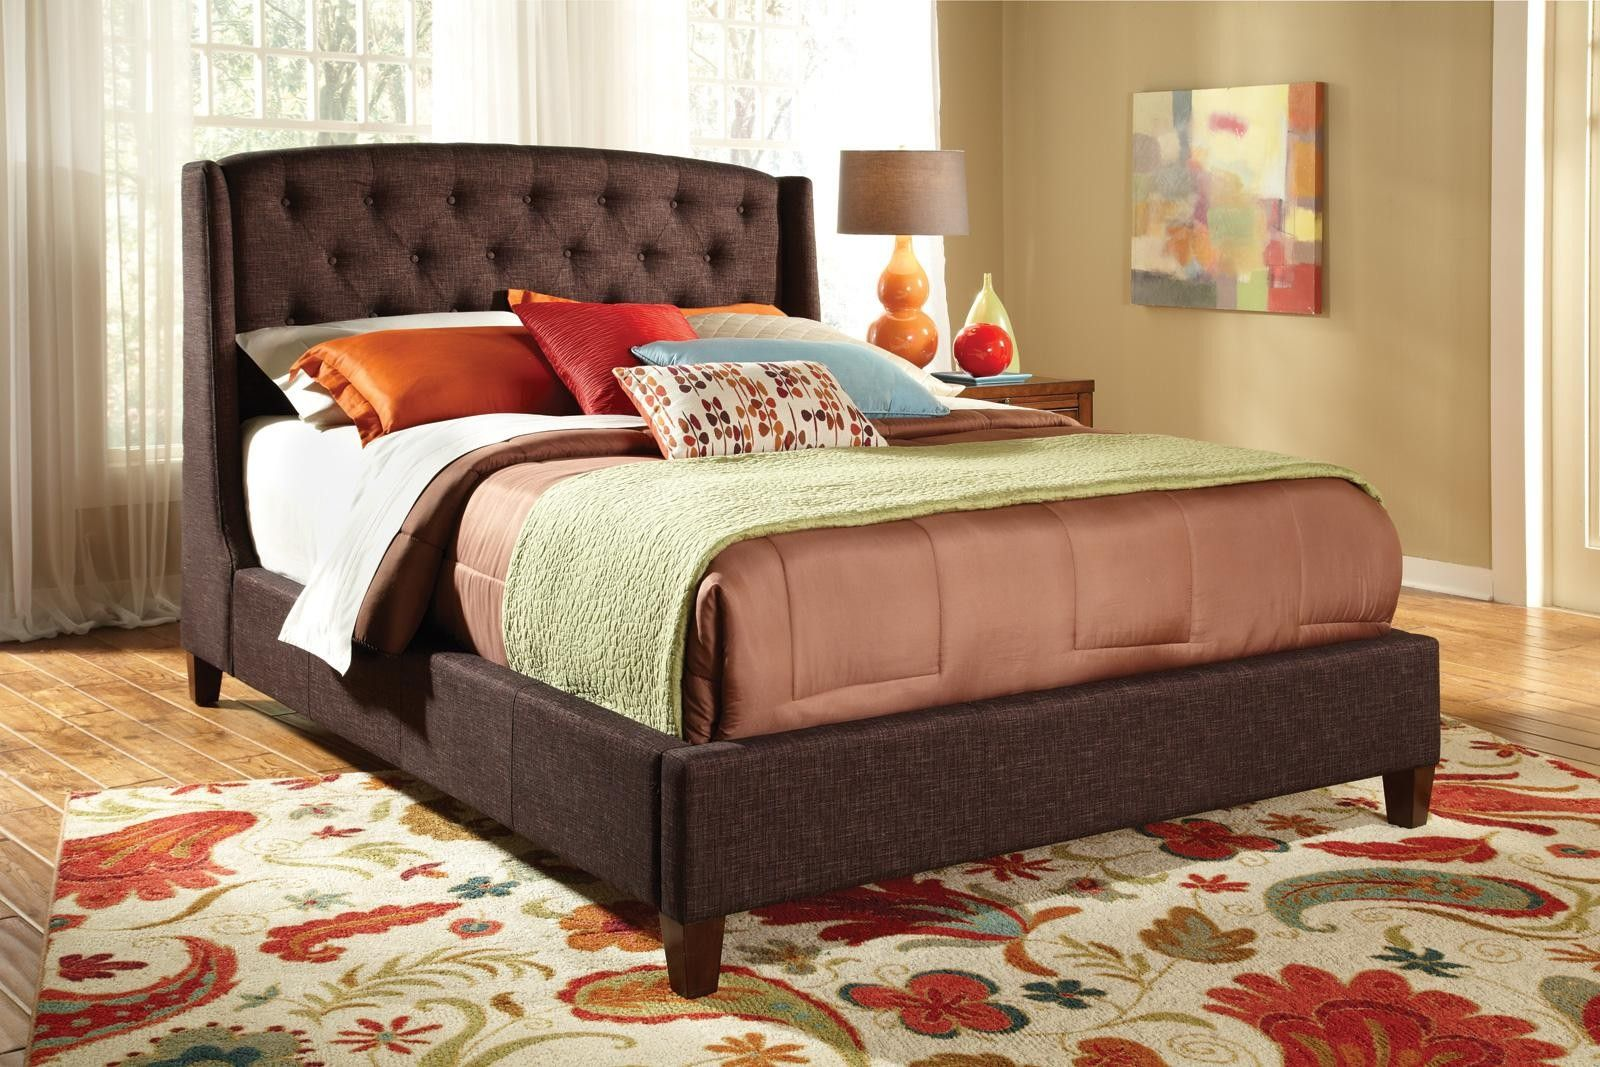 CLEARANCE 300247Q Queen Upholstered Bed Frame